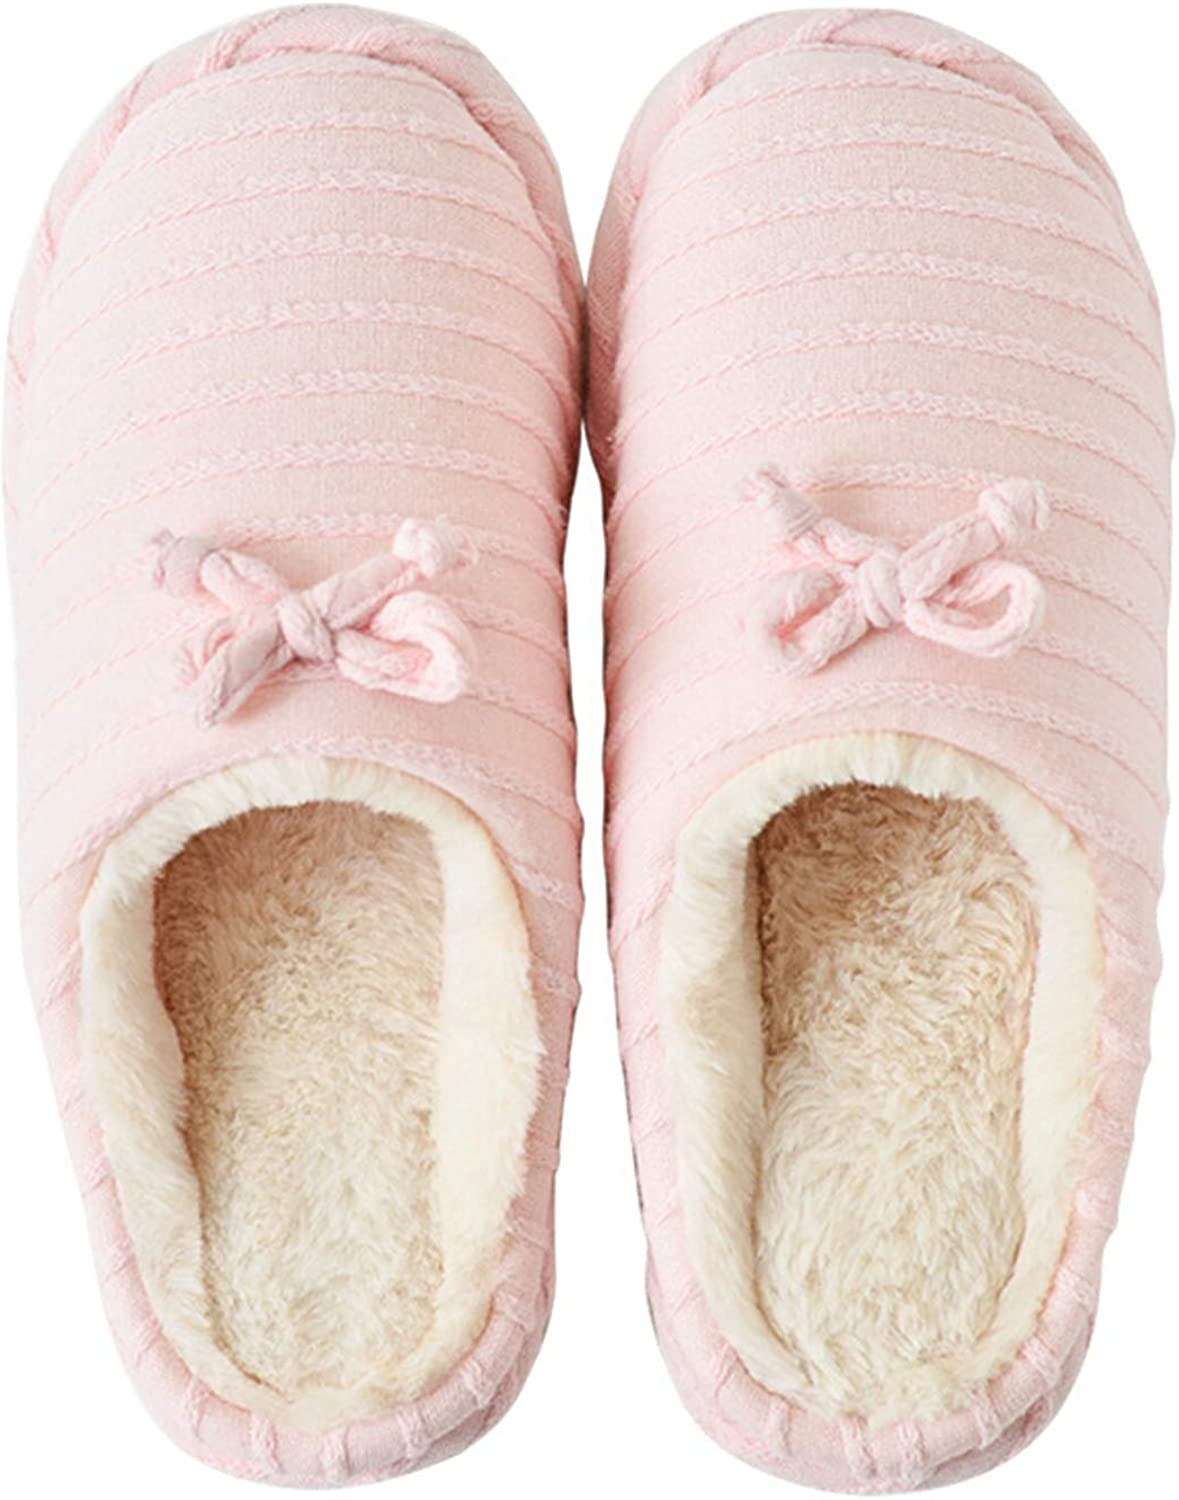 Winter Cotton Warm Slippers for Women,Comfortable Soft Plush Indoor House shoes Anti-Slip Home Bedroom Slippers,Pink Beige